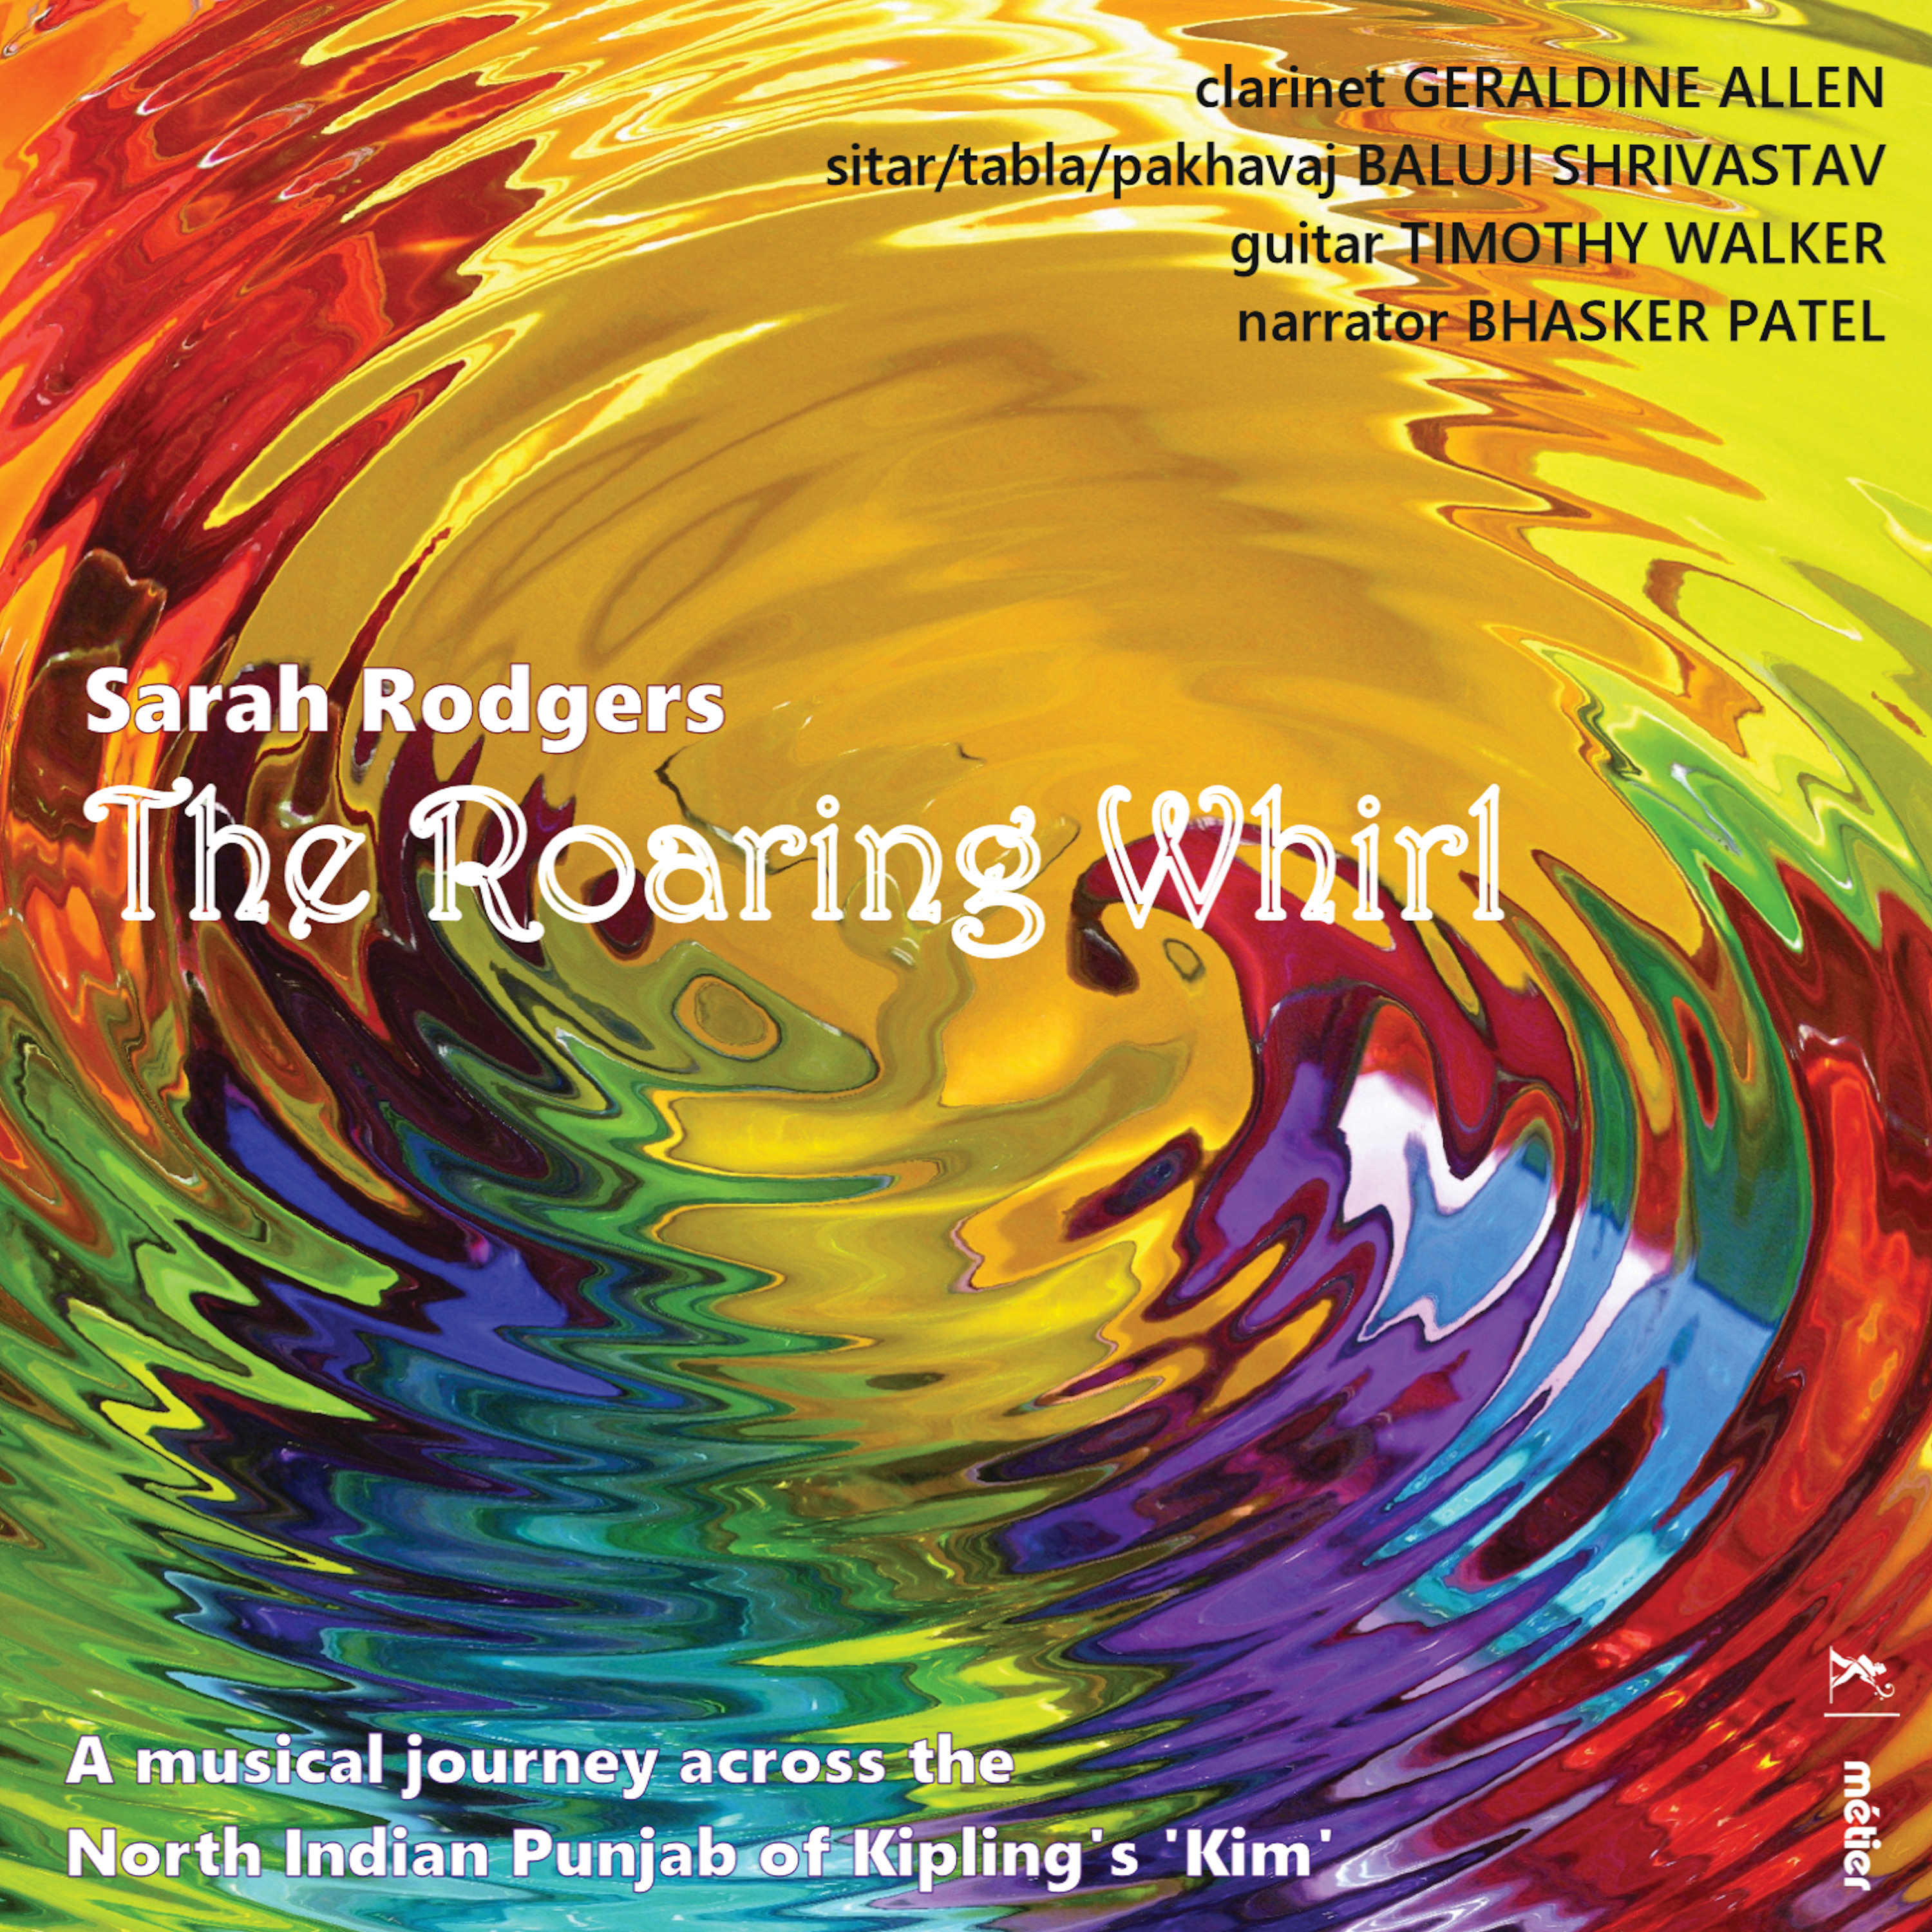 Sarah Rodgers: The Roaring Whirl